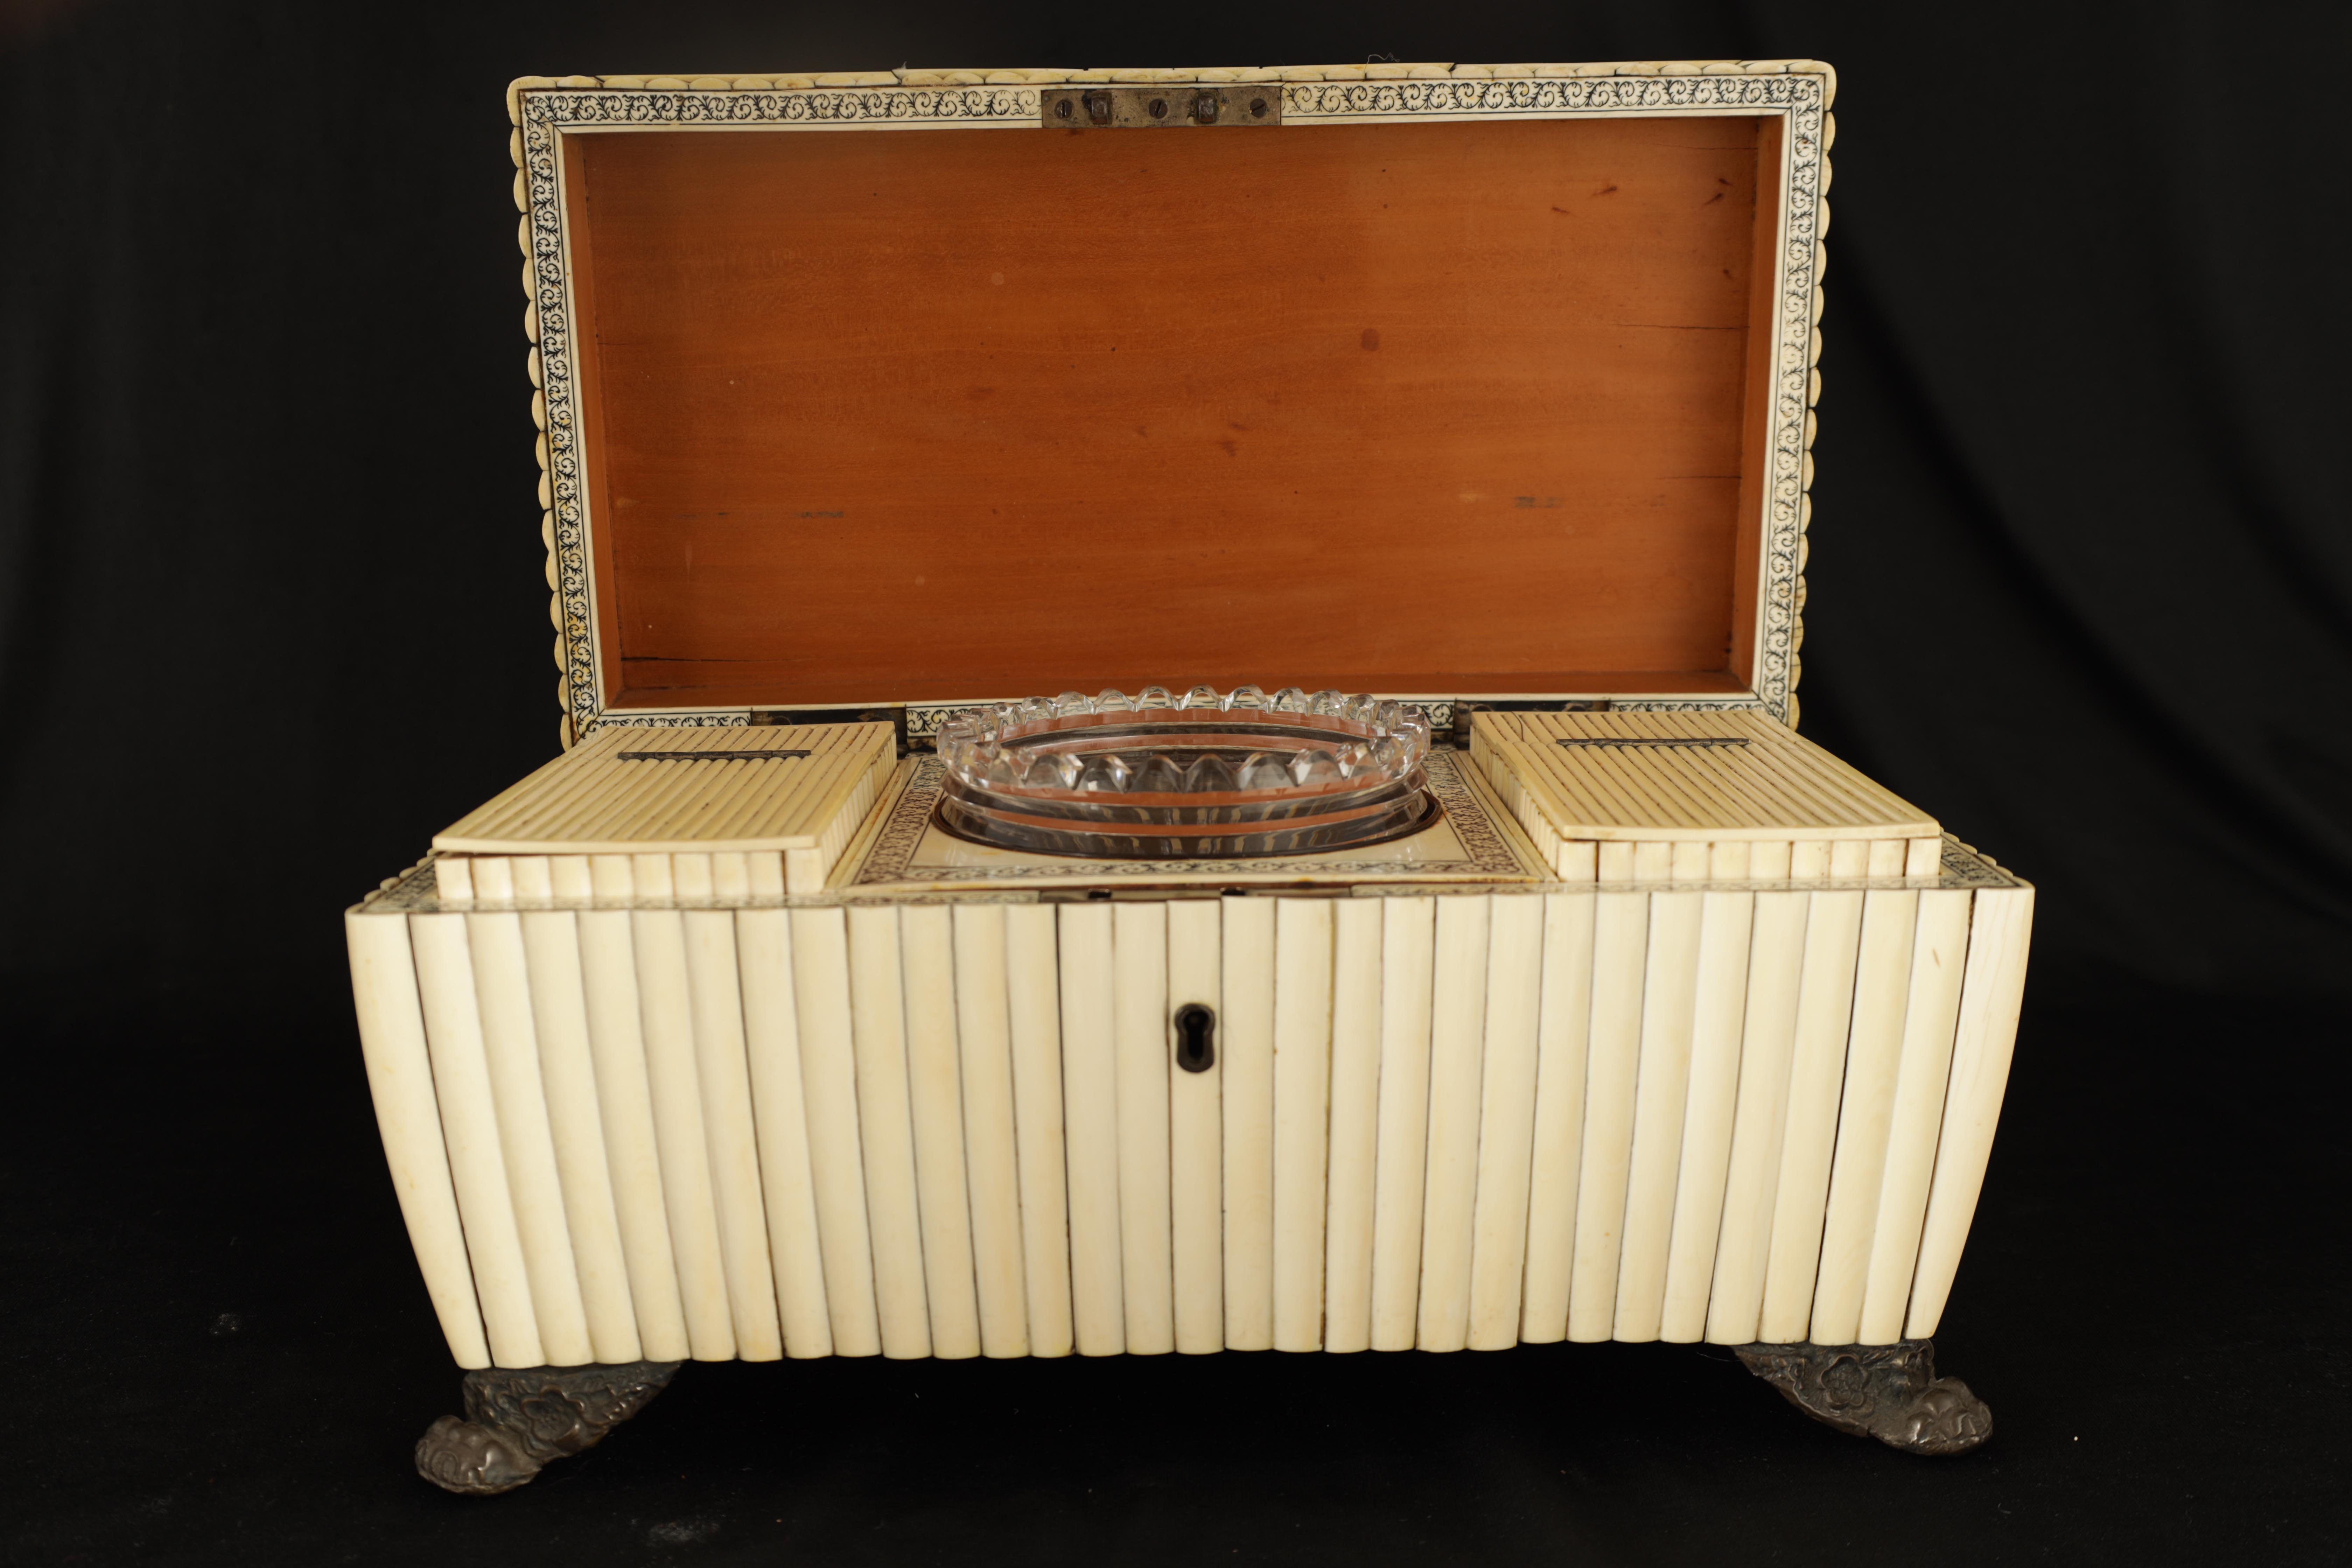 A REGENCY ANGLO-INDIAN IVORY AND SANDALWOOD VIZAGAPATAM TEA CADDY of sarcophagus form with gadroon - Image 3 of 12